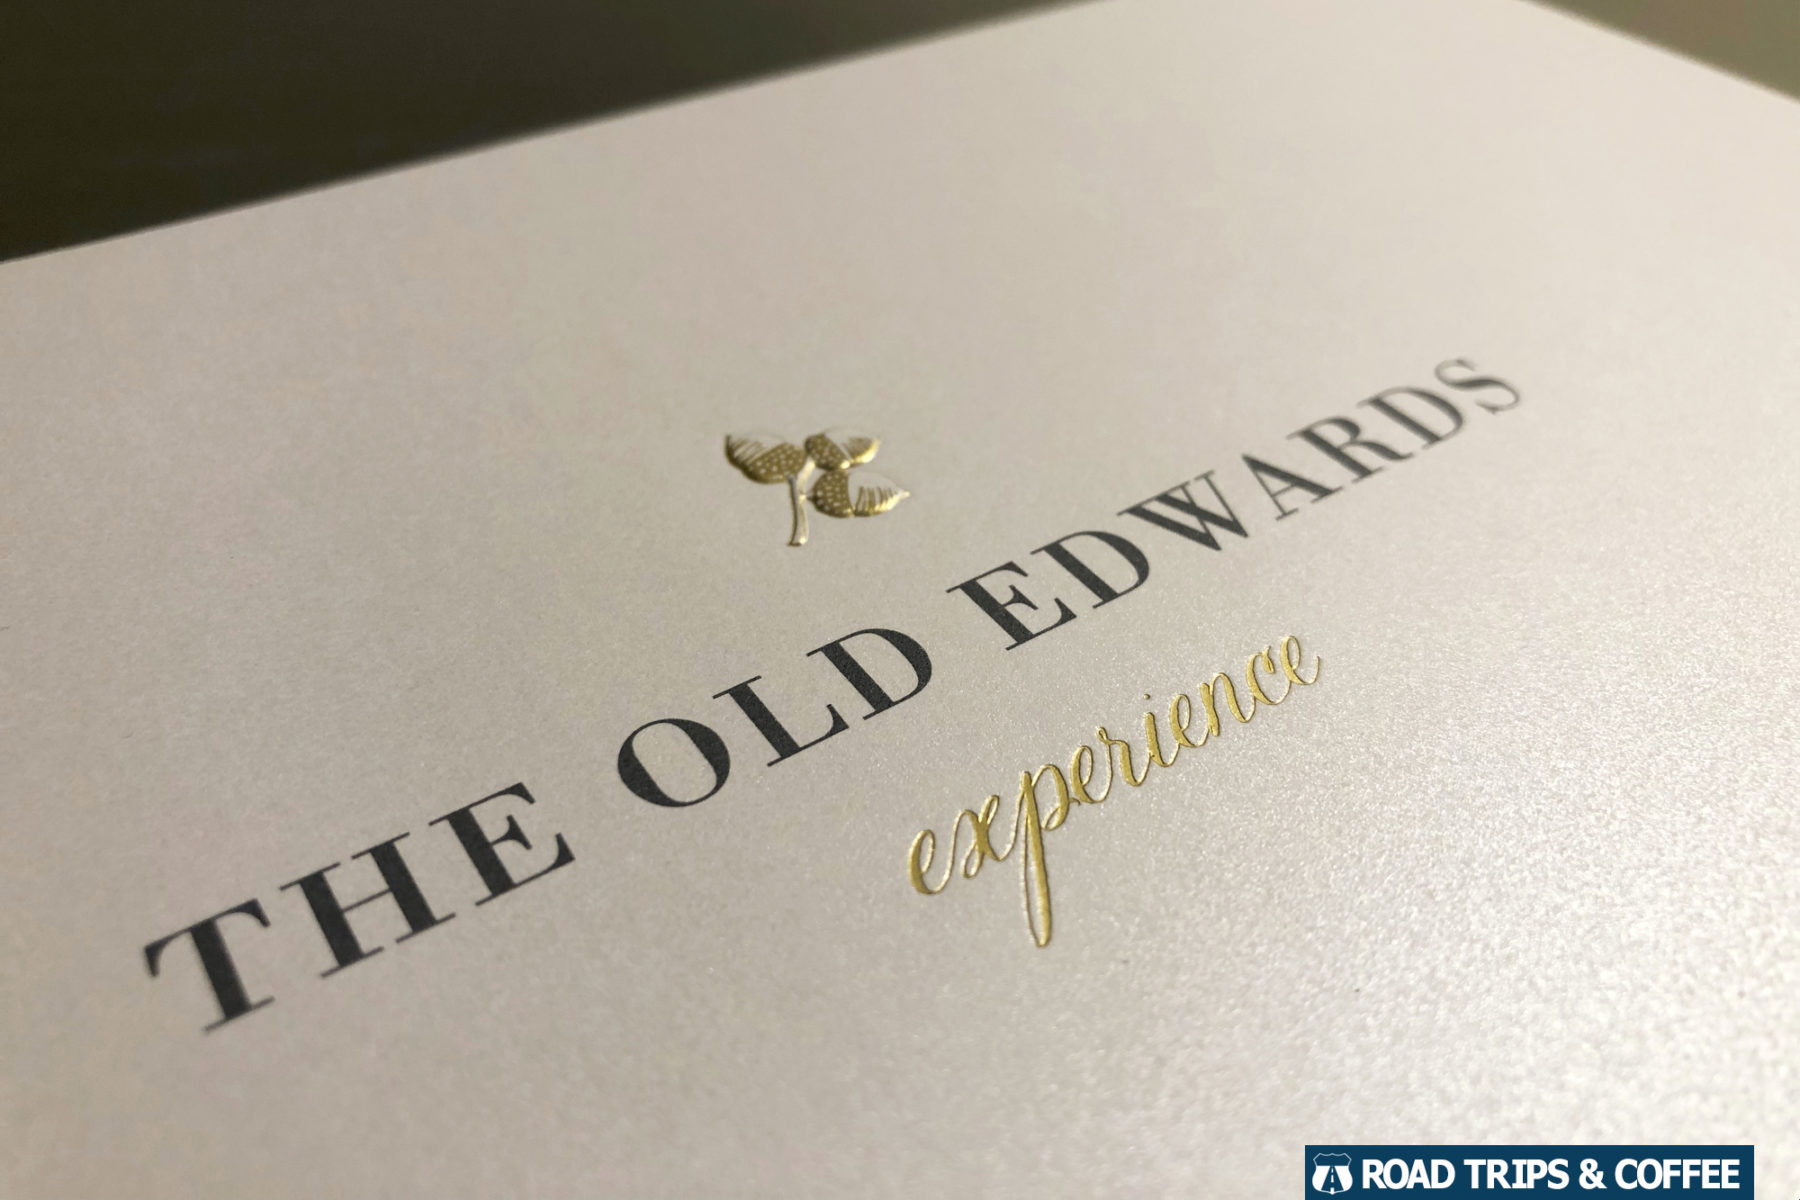 The Old Edwards Experience ready to entertain at 200 Main in Highlands, North Carolina